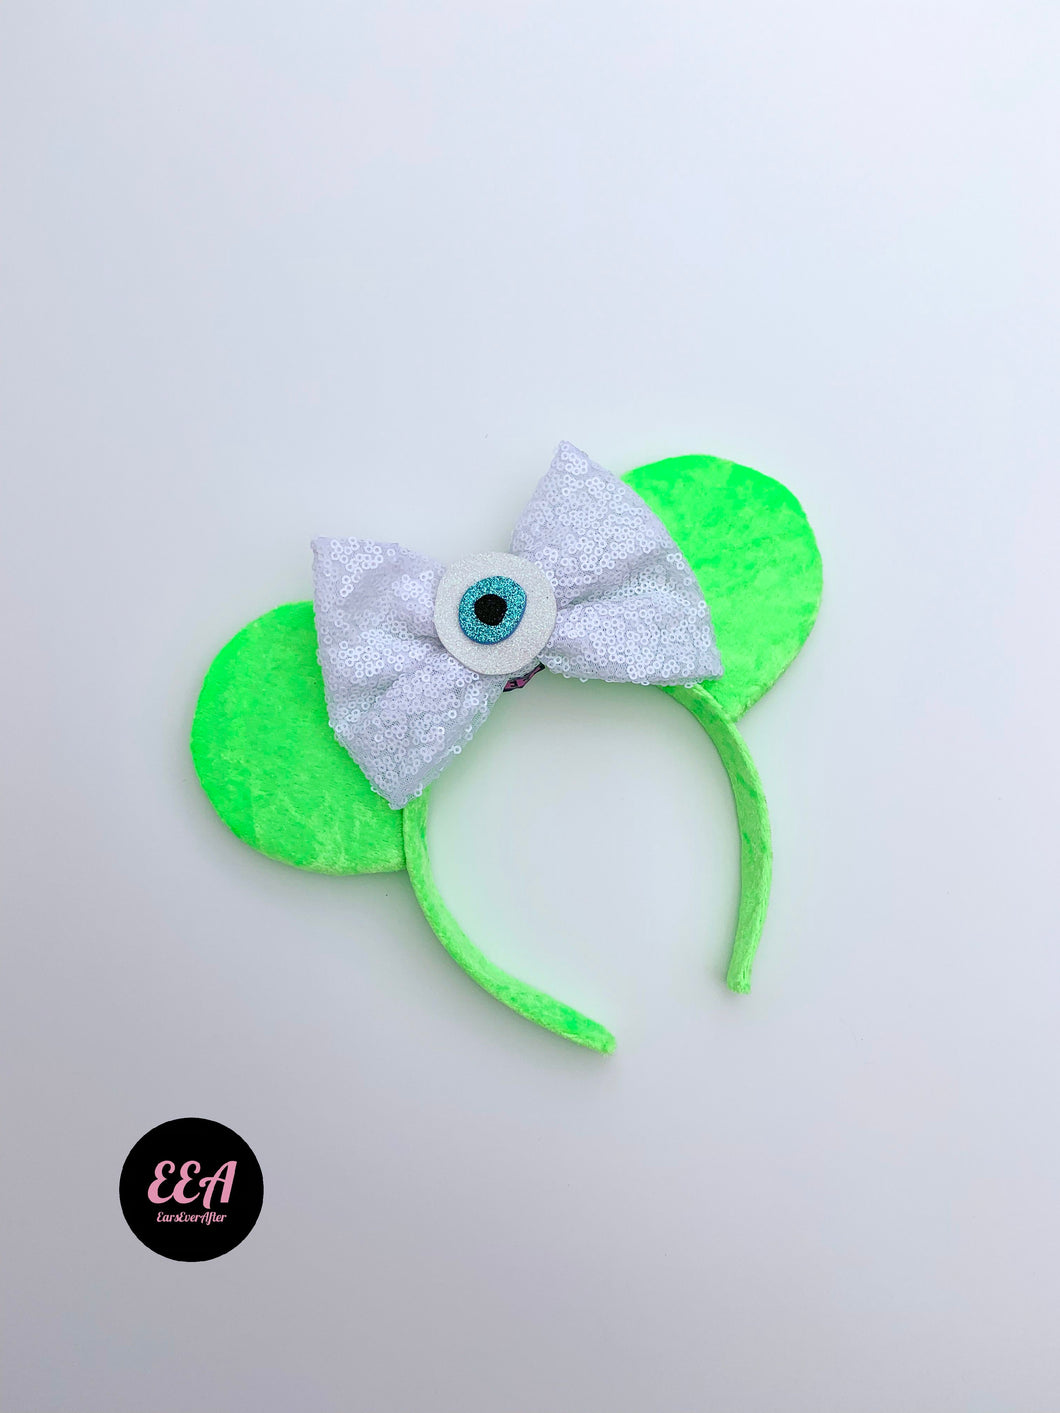 Ears Ever After, Disney Ears, Minnie Mouse Ears, Mickey Ears, Custom Mickey Ears, Mouse Ears, UK Disney Ears, Minnie Ears, Mickey Ears, Disney, Mike Ears, Monsters Inc Ears, Monsters Inc